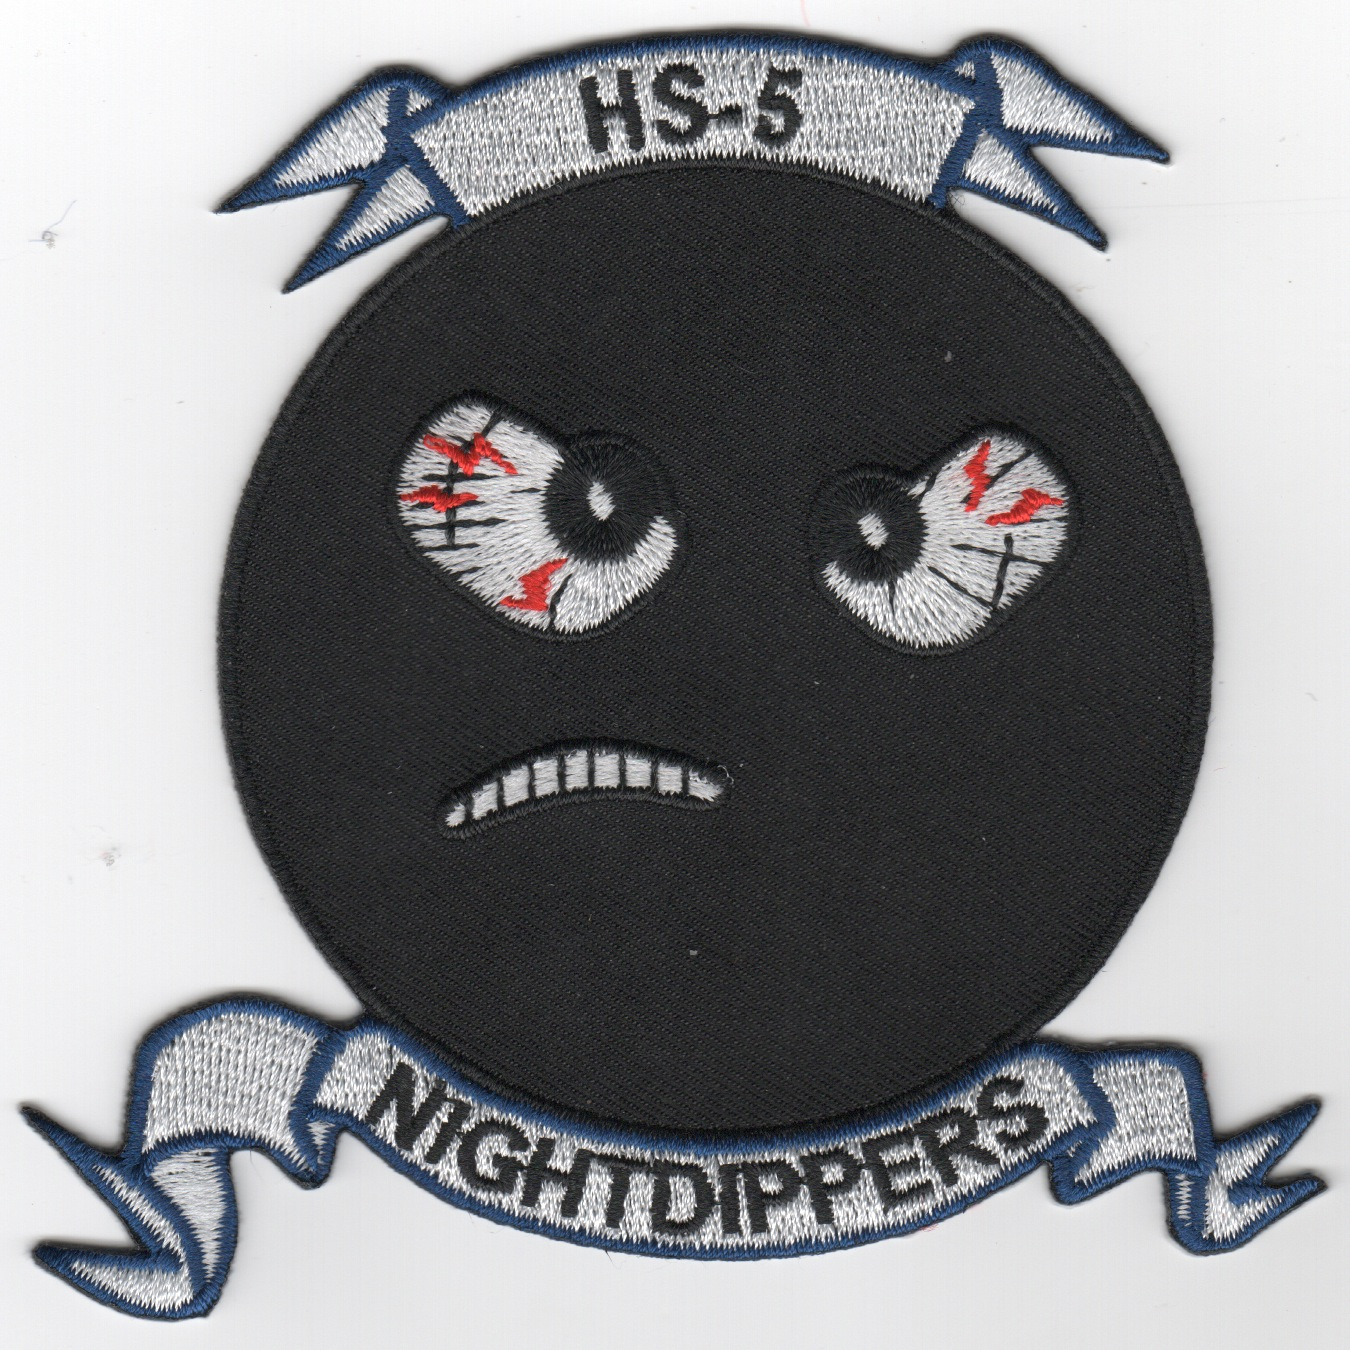 HS-5 'Angry Grimace' Patch